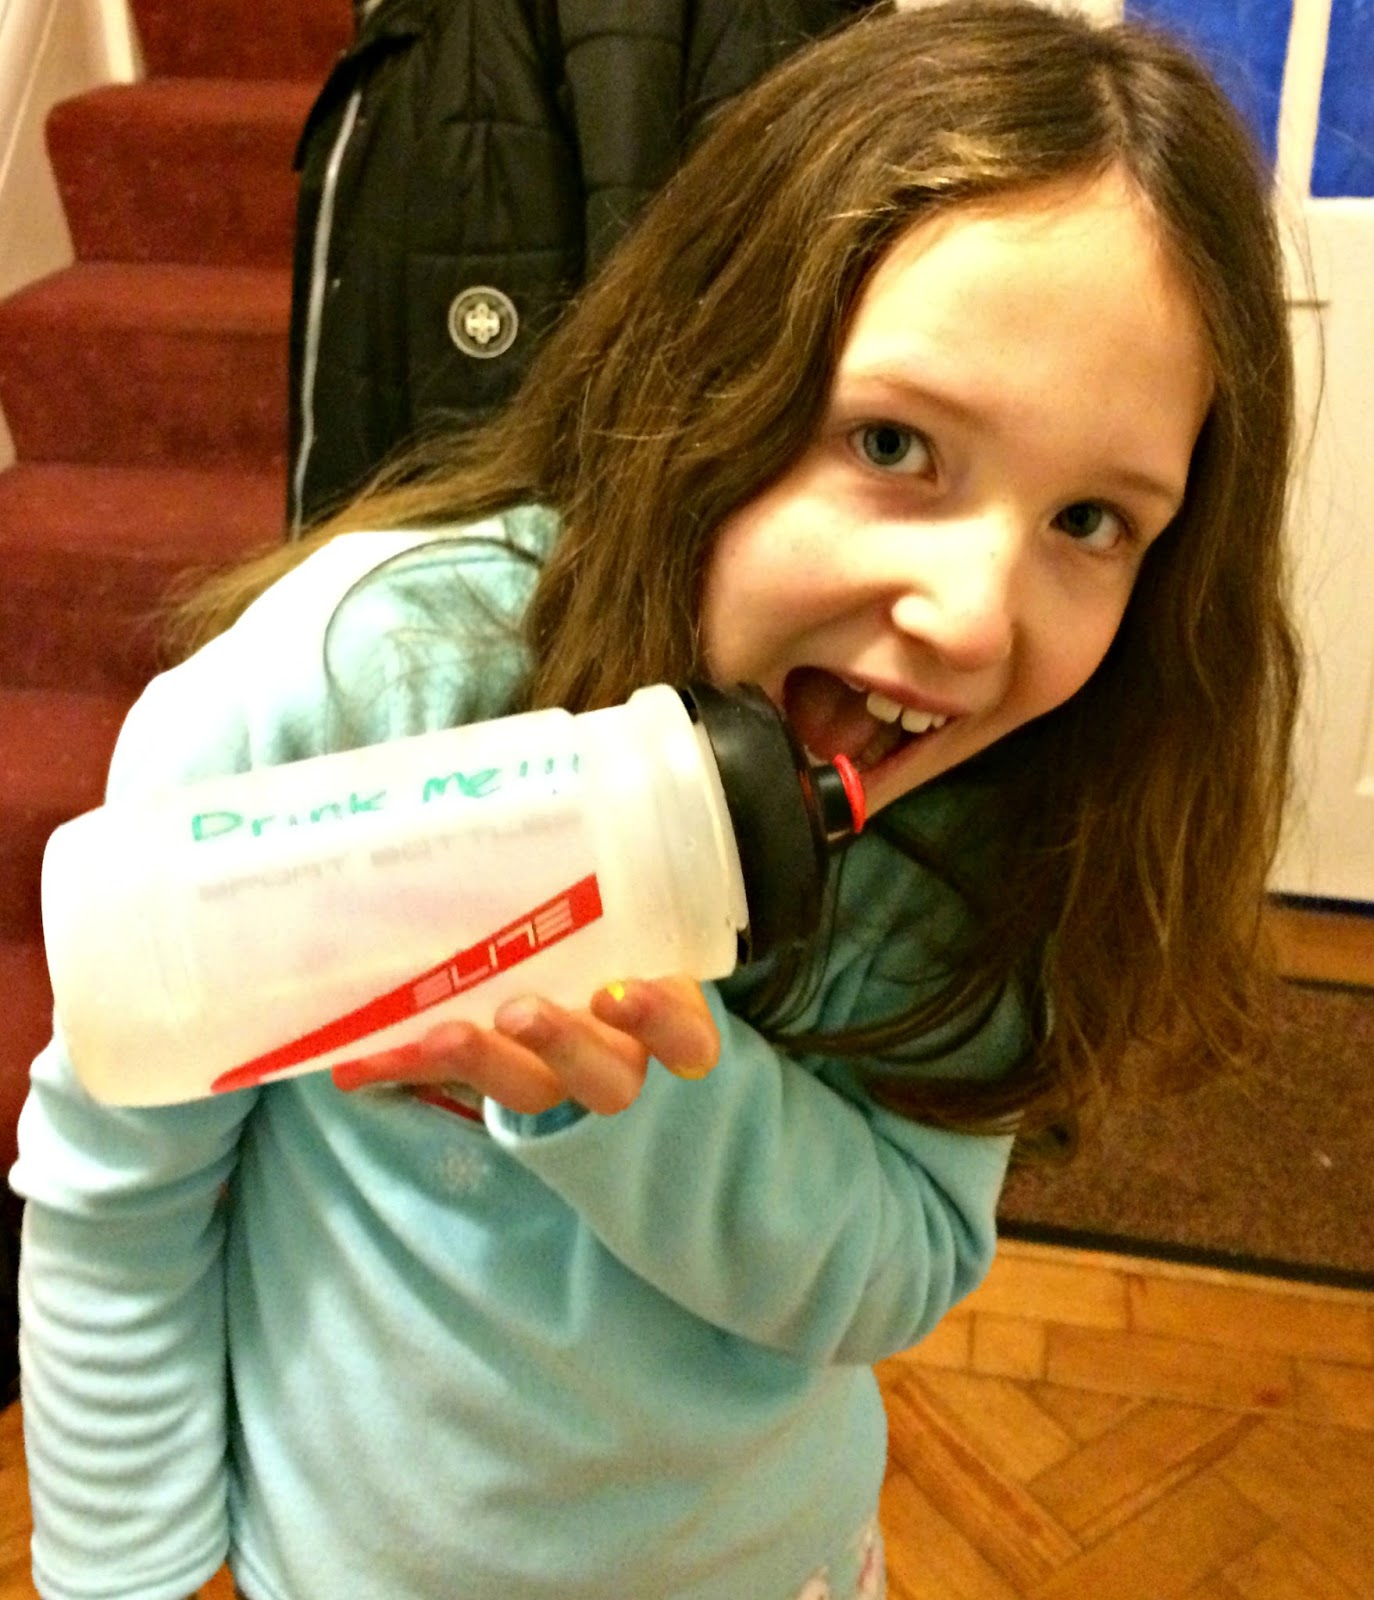 Caitlin with inscribed water bottle saying drink me